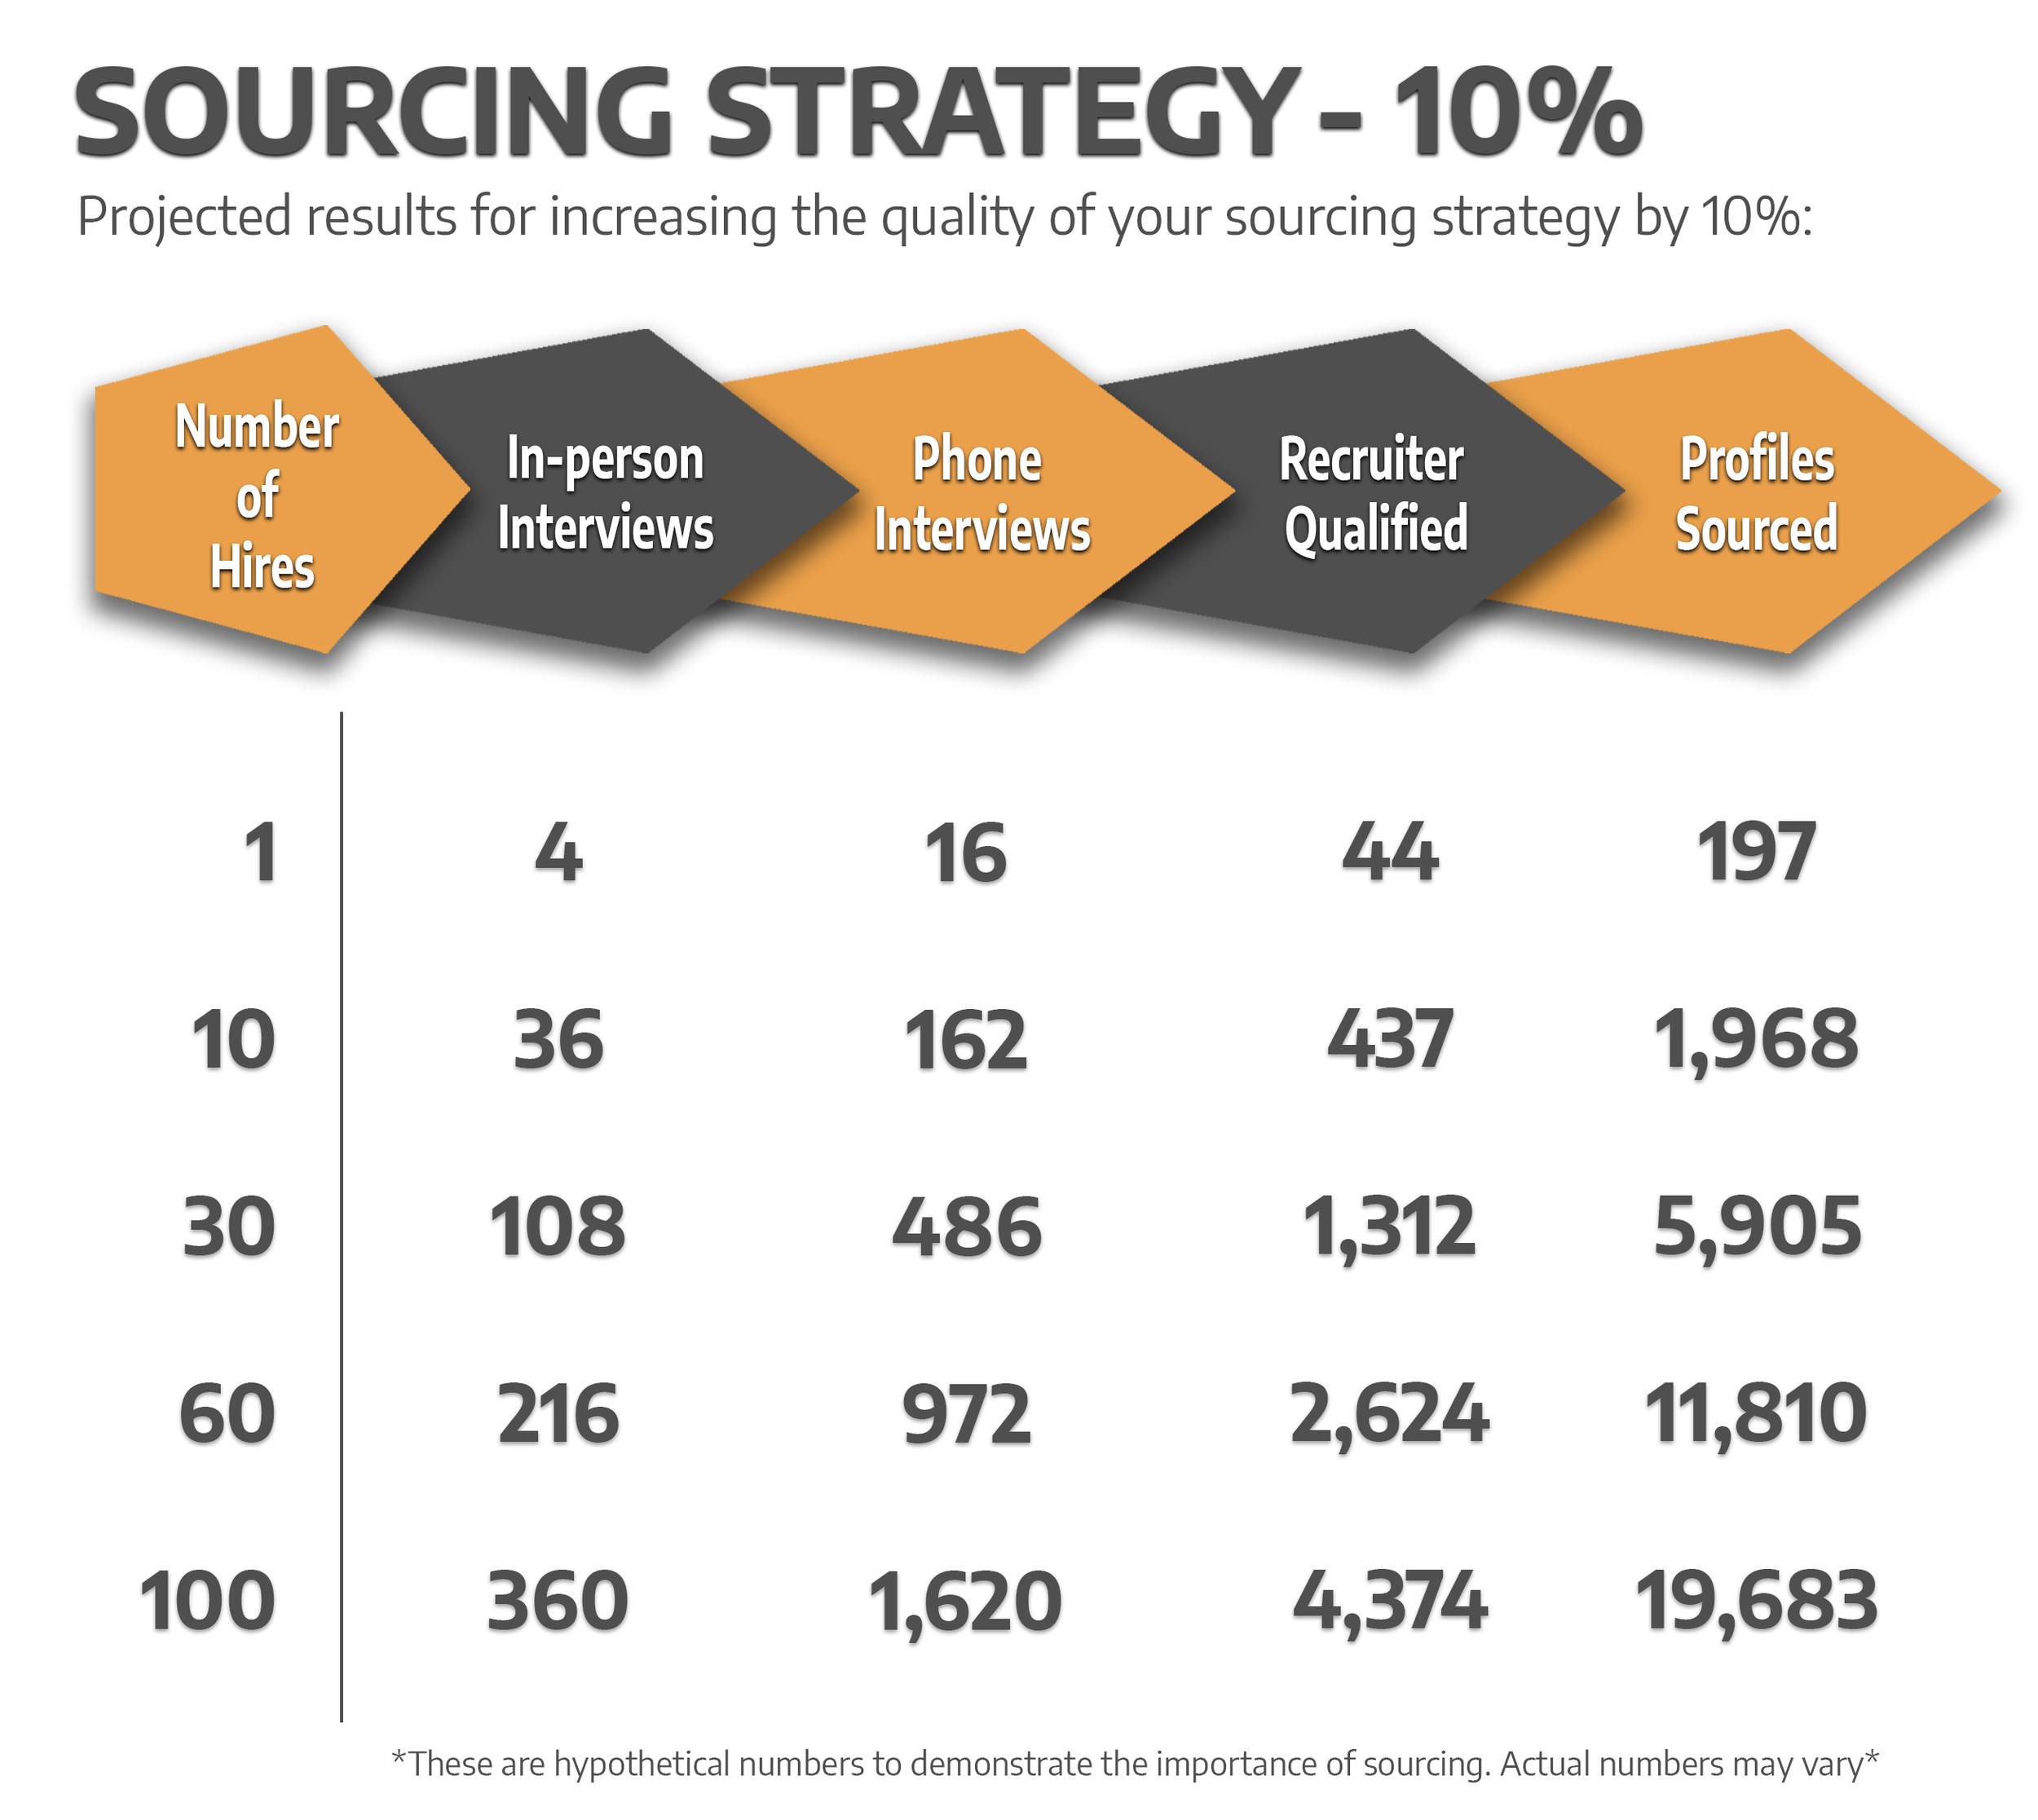 *These are hypothetical numbers to demonstrate the importance of sourcing. Actual numbers may vary*